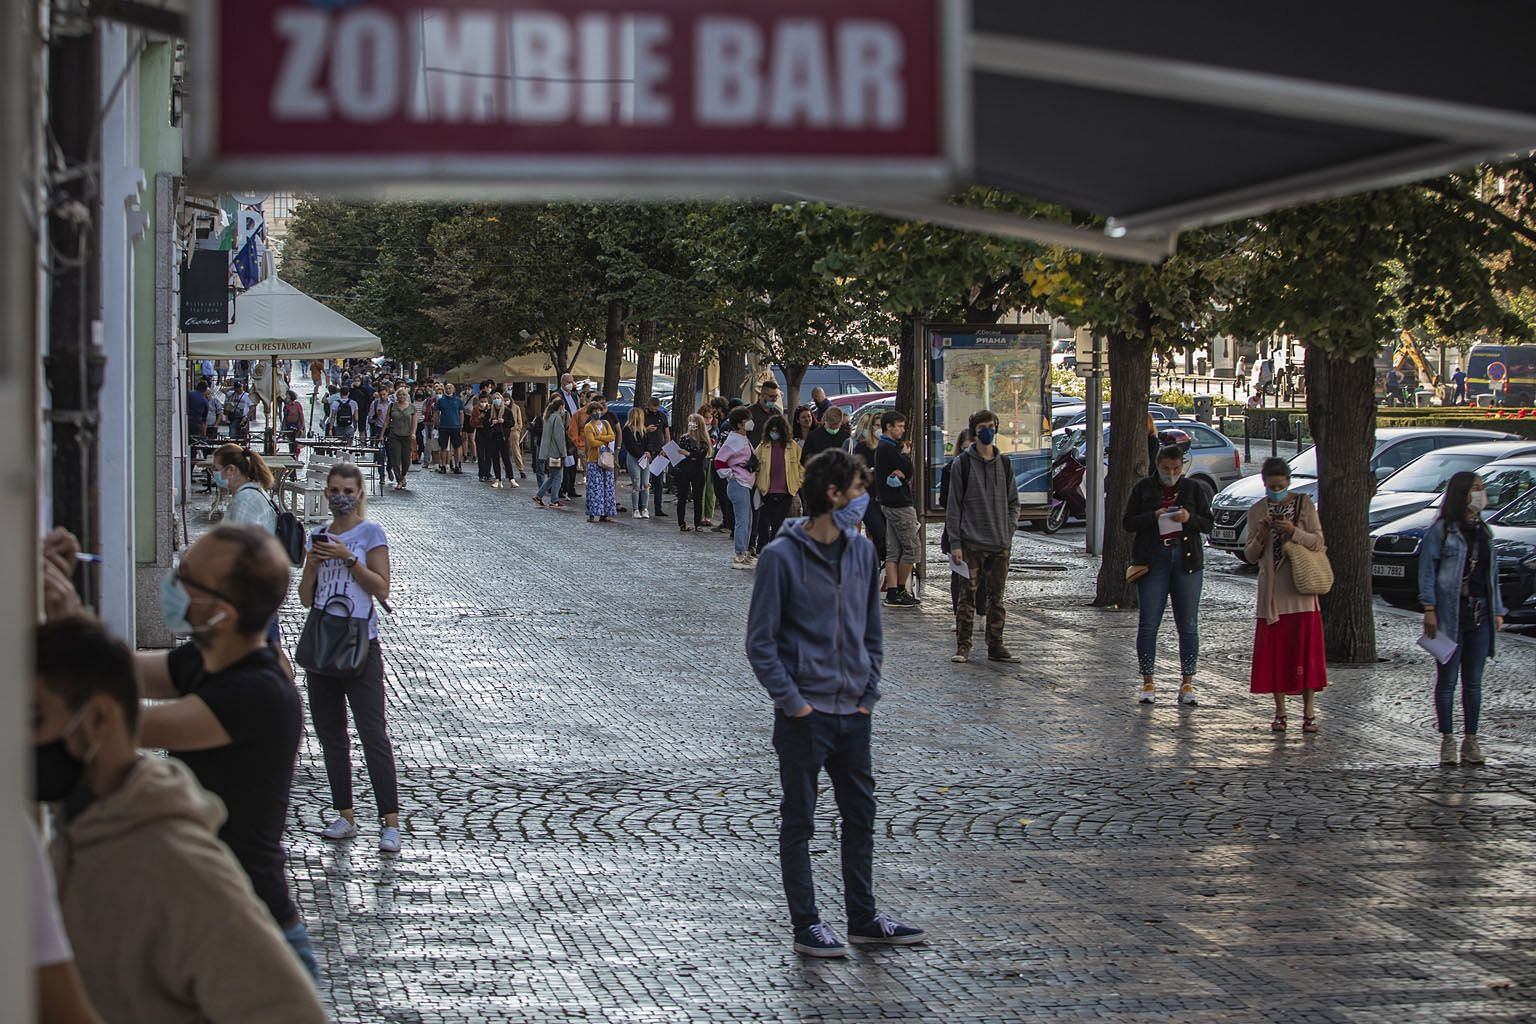 A street in Palma de Mallorca, capital of Spain's Balearic Islands, being disinfected earlier this week. The central government is set to unveil new restrictions to curb the virus. PHOTO: AGENCE FRANCE-PRESSE The queue at a coronavirus testing statio